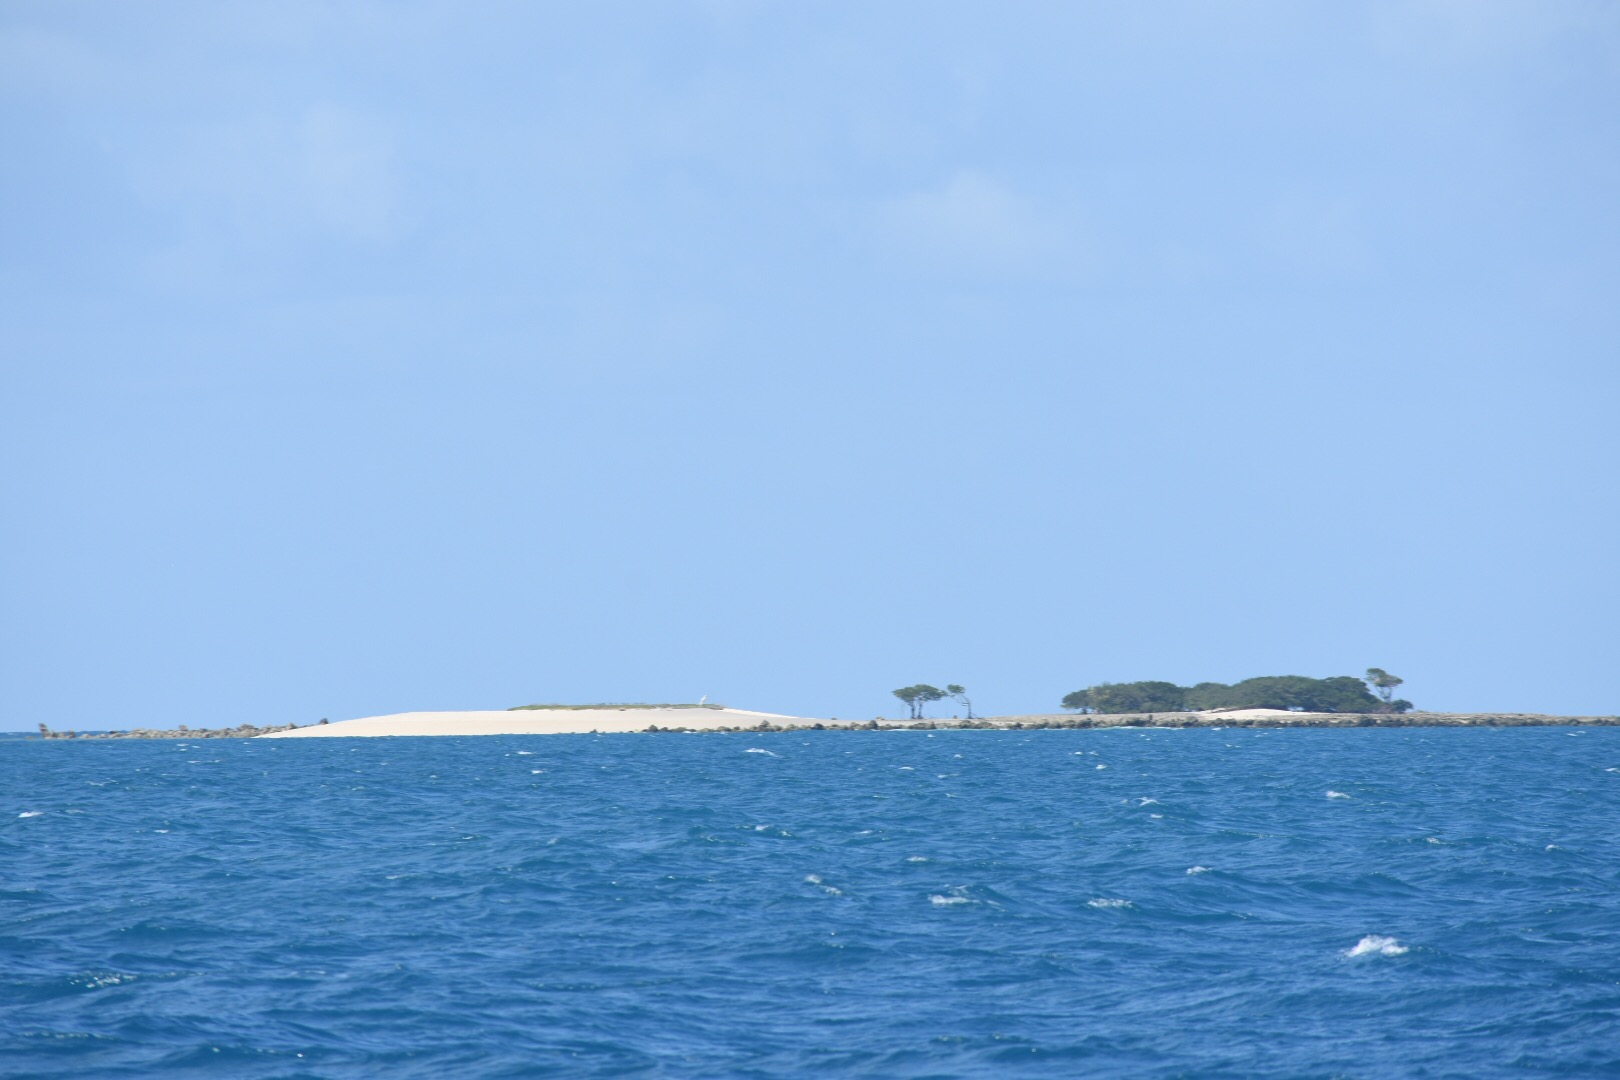 Little reef islands dot the seas all the way to the Cape